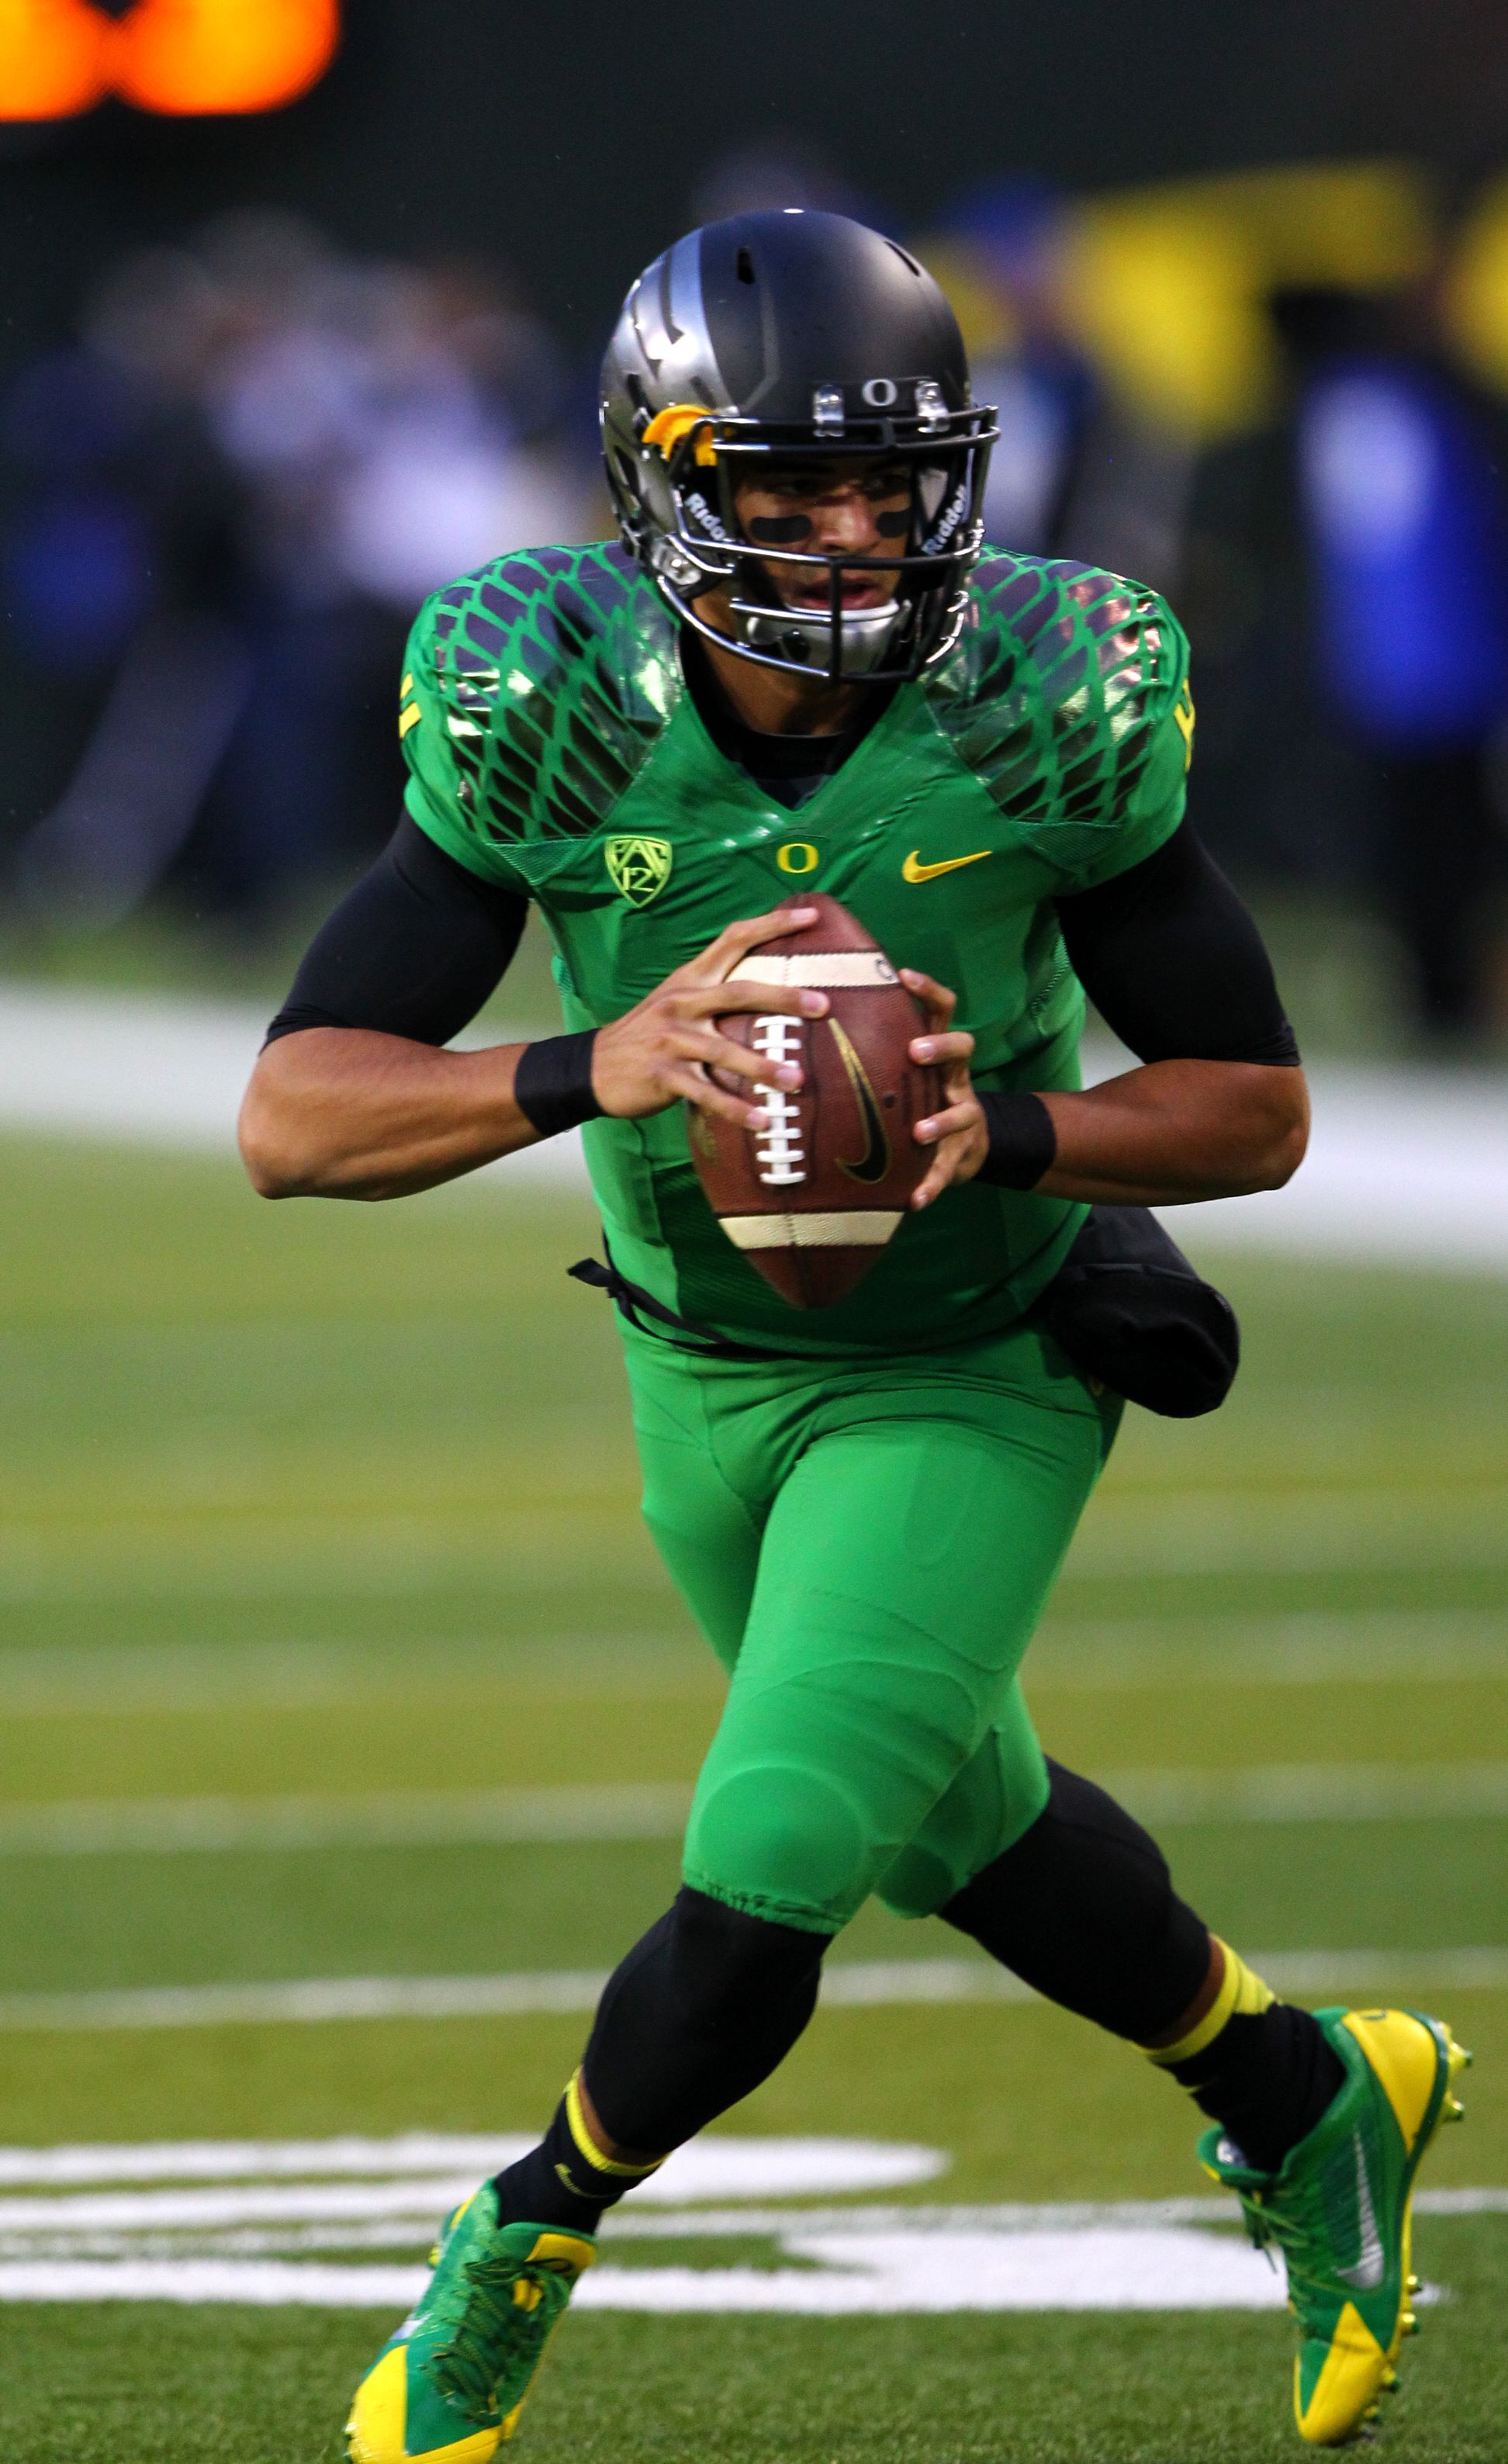 Sept 28 Vs Cal The Ducks Debuted A New Matte Black Helmet To Compliment Their Fighting Duck Green Oregon Ducks Football Ducks Football Oregon Ducks Uniforms